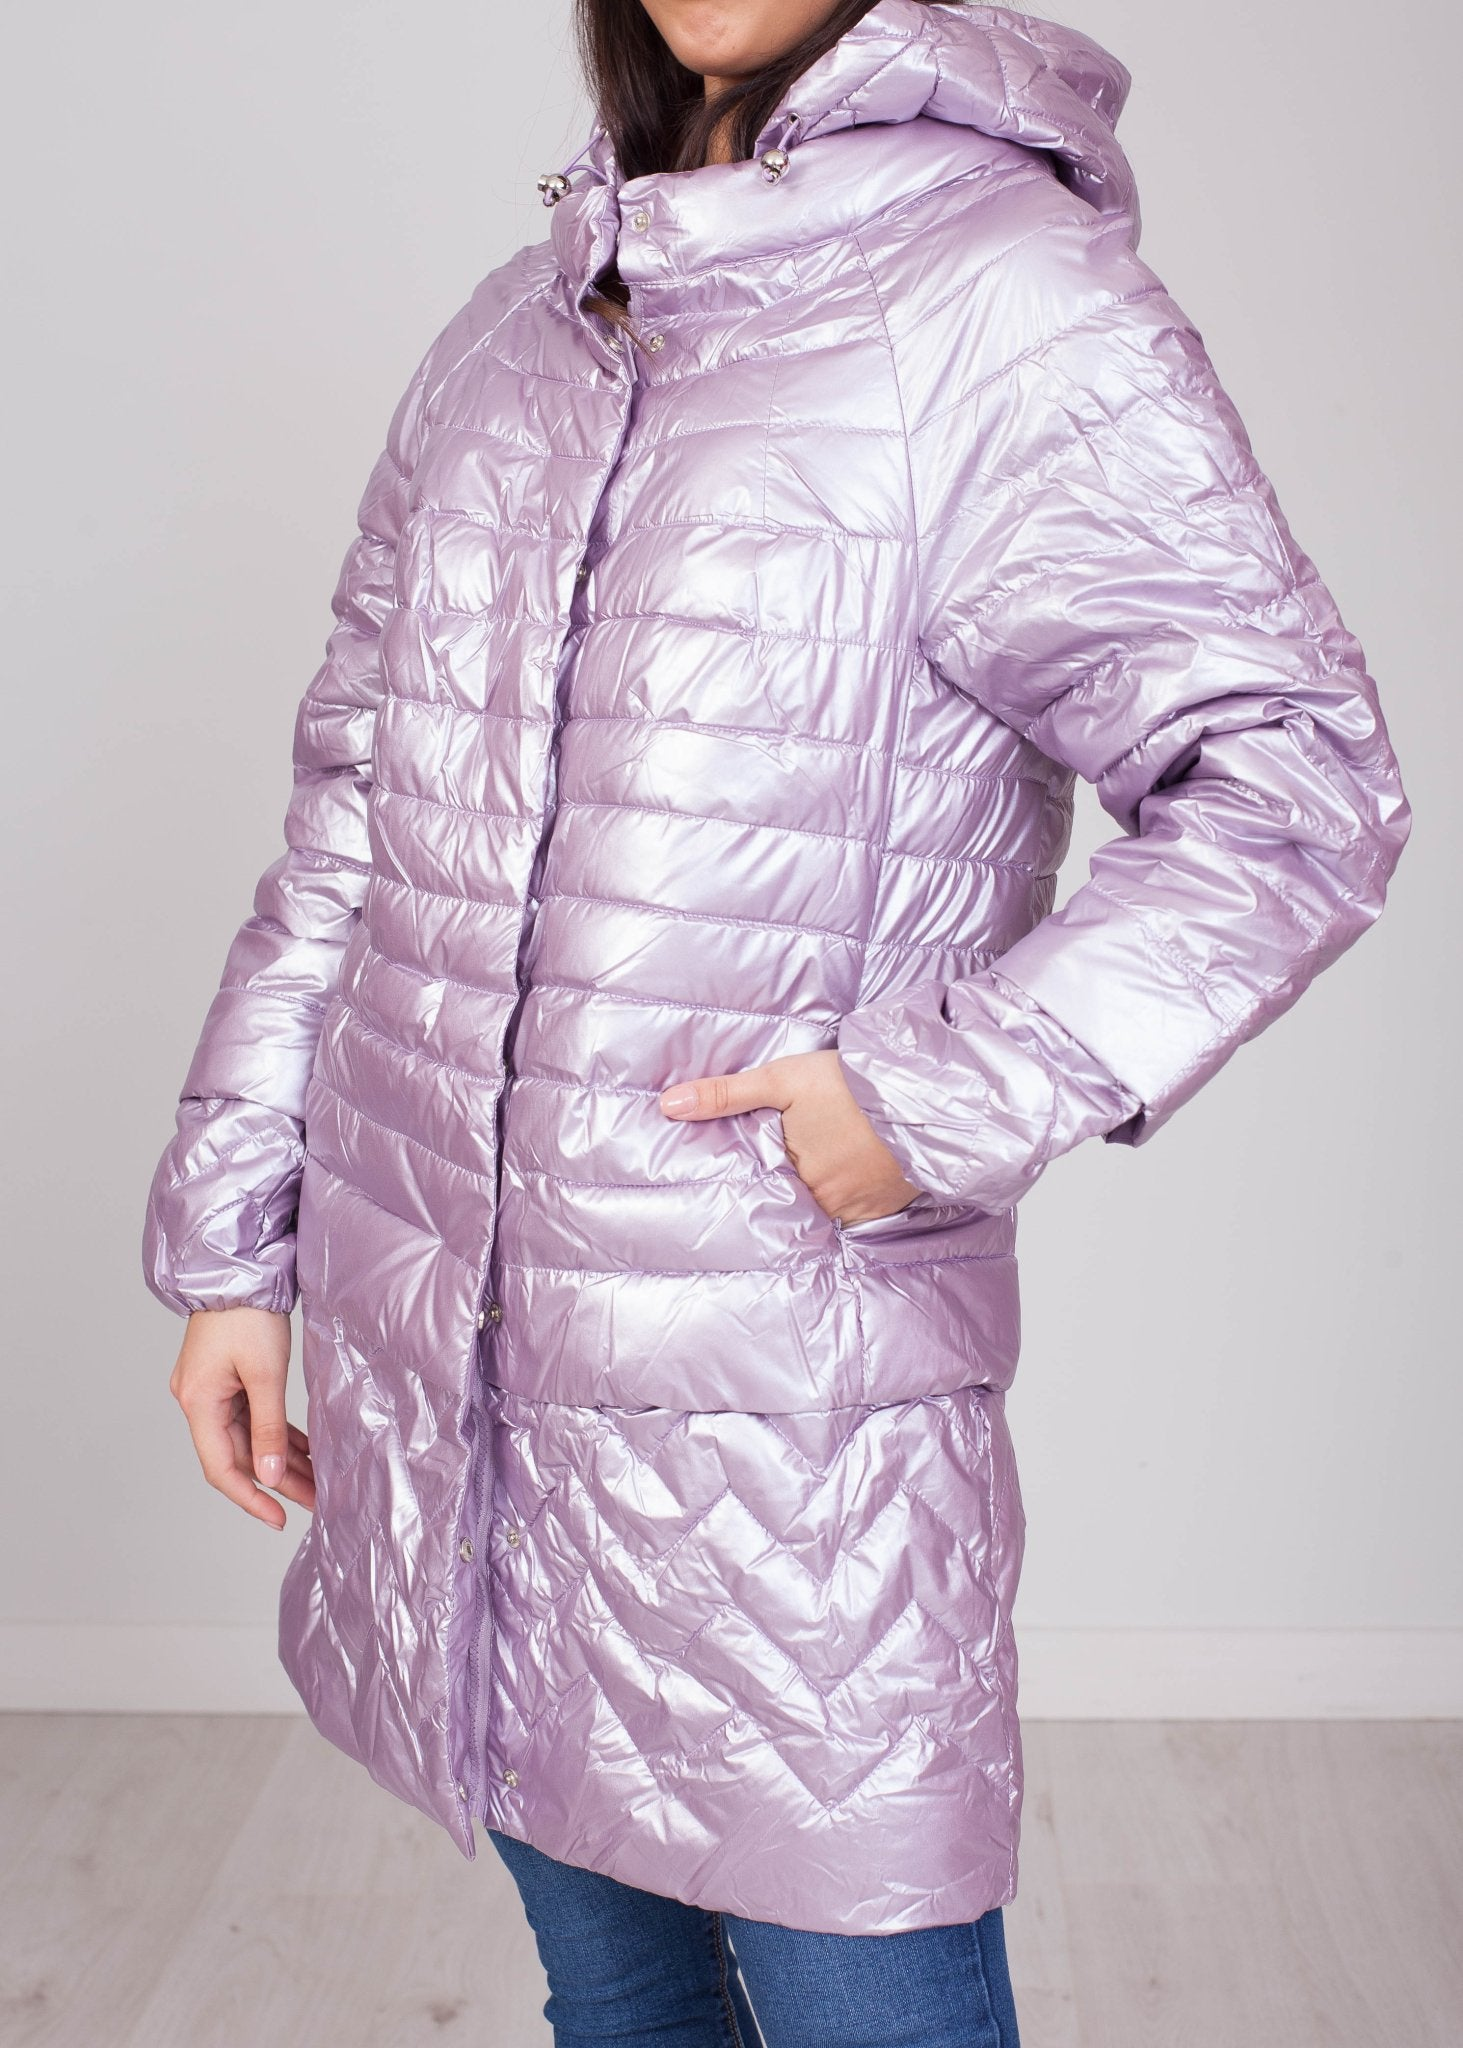 Priya Lilac Shimmer Quilted Coat - The Walk in Wardrobe